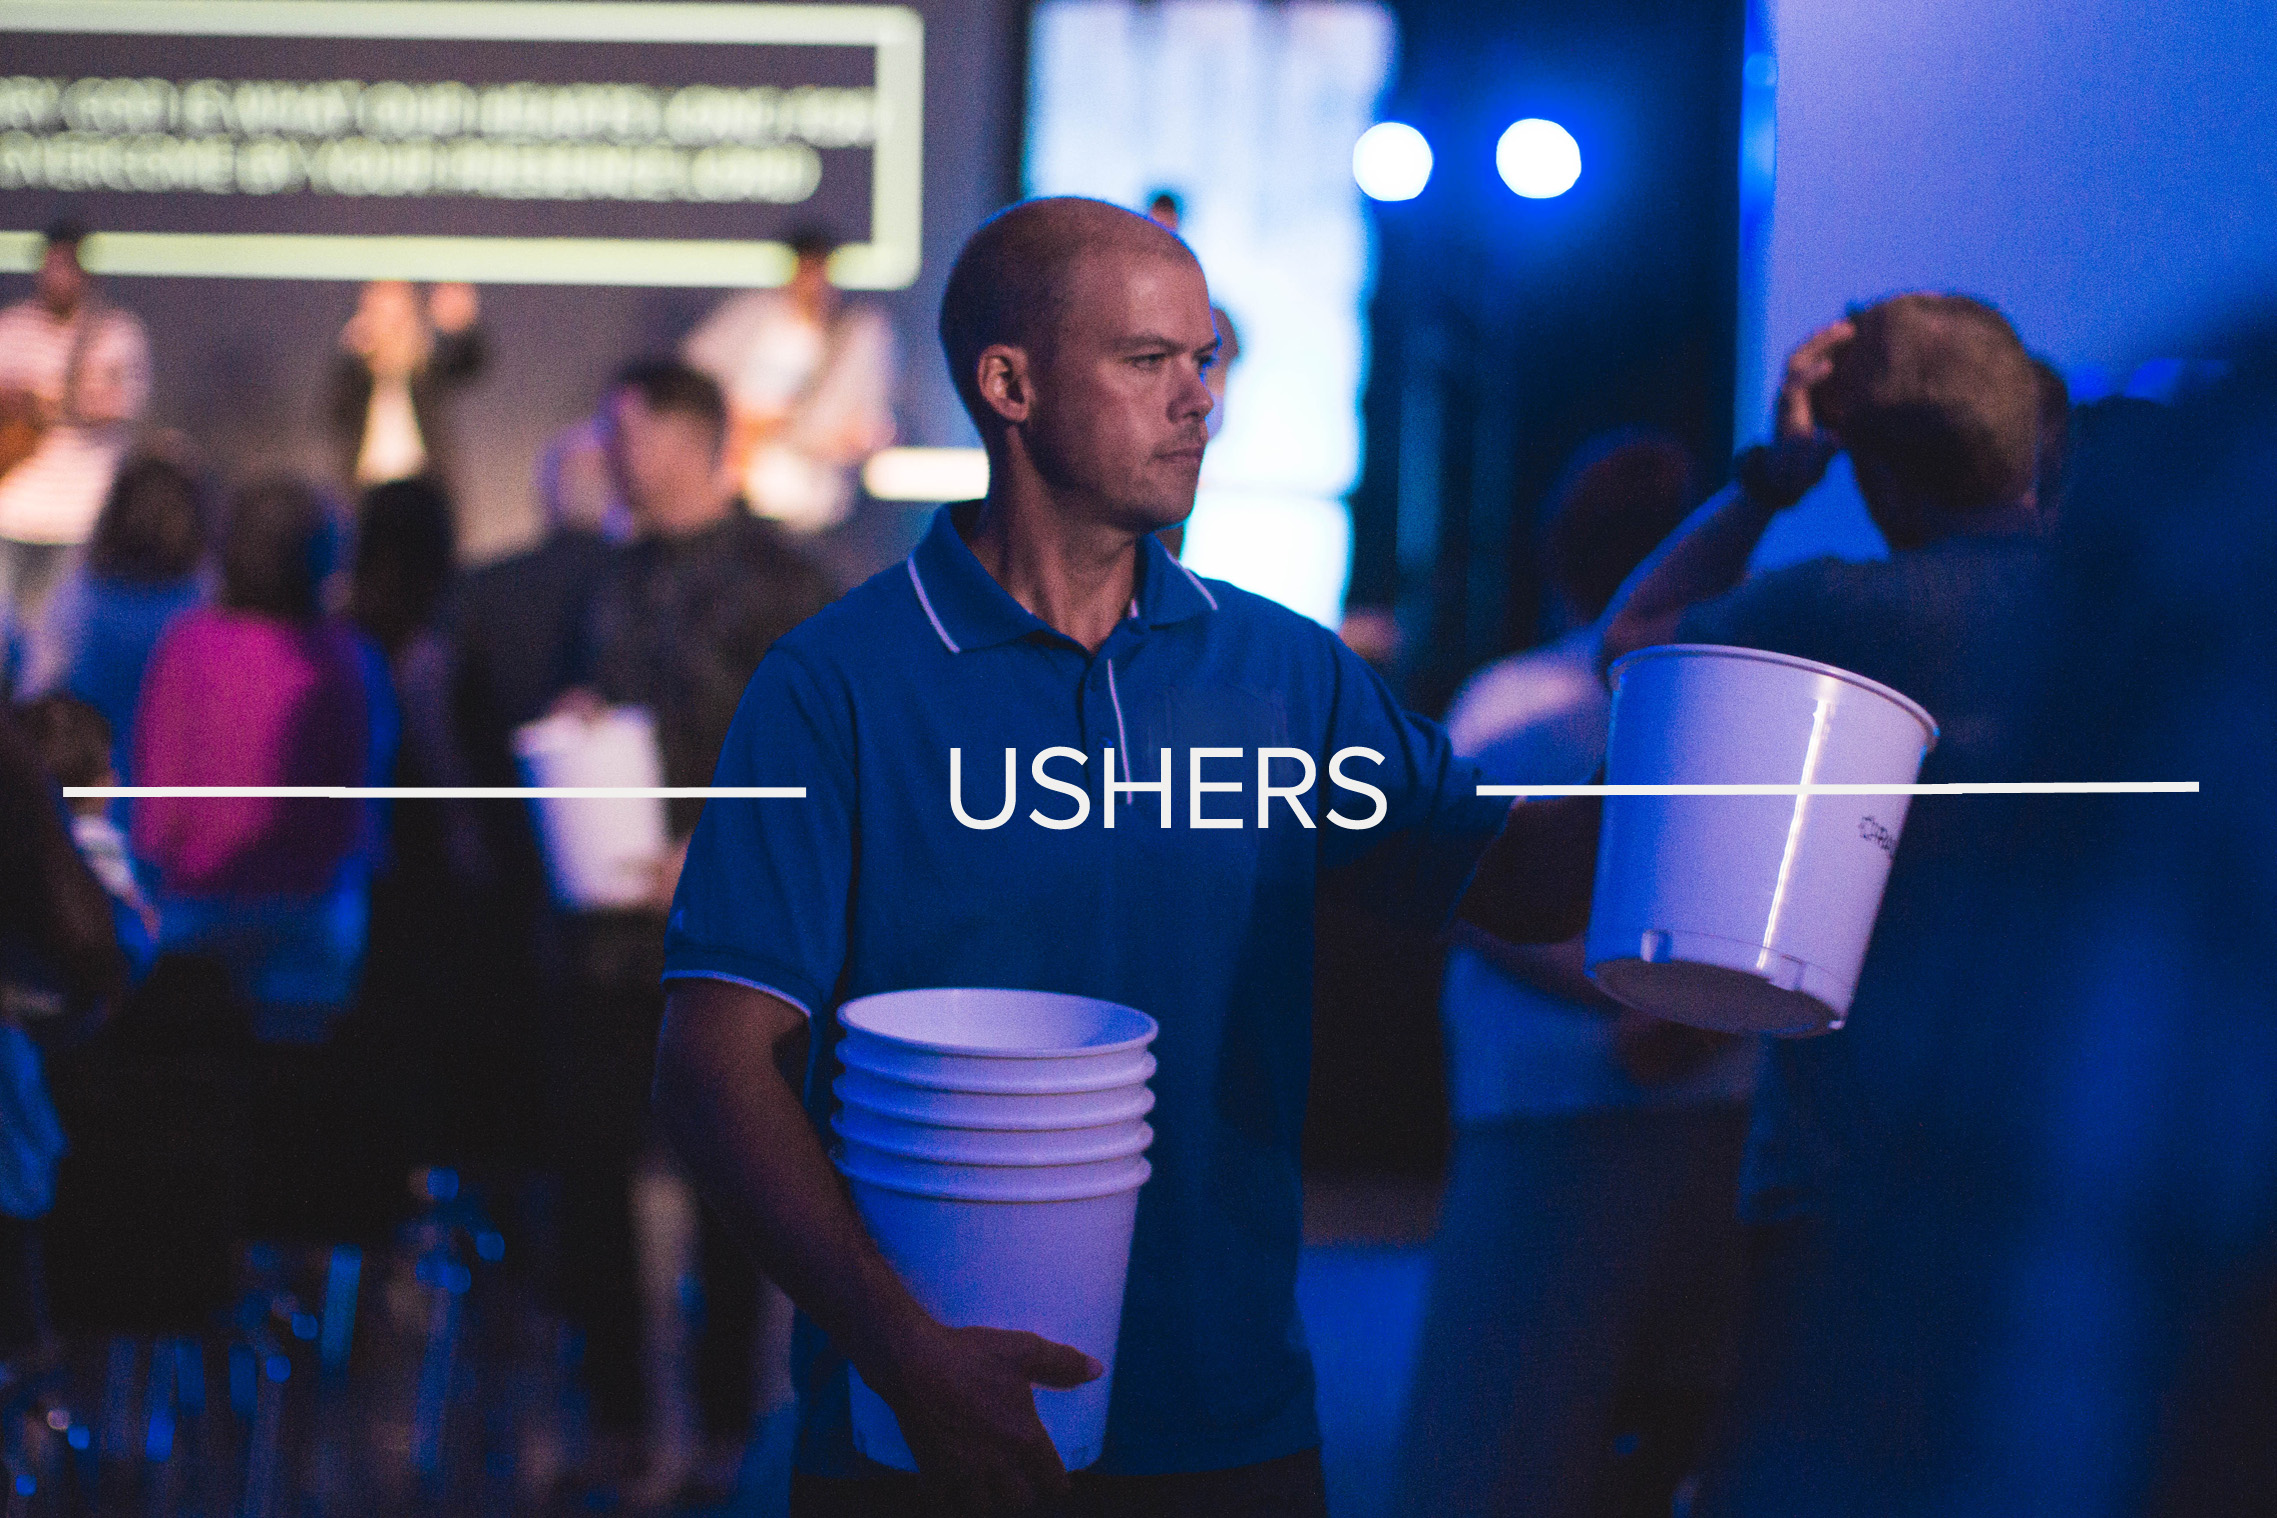 USHERS - The ushers keep the sanctuary safe, orderly, and serve throughout the service from helping families find seats to facilitating communion.